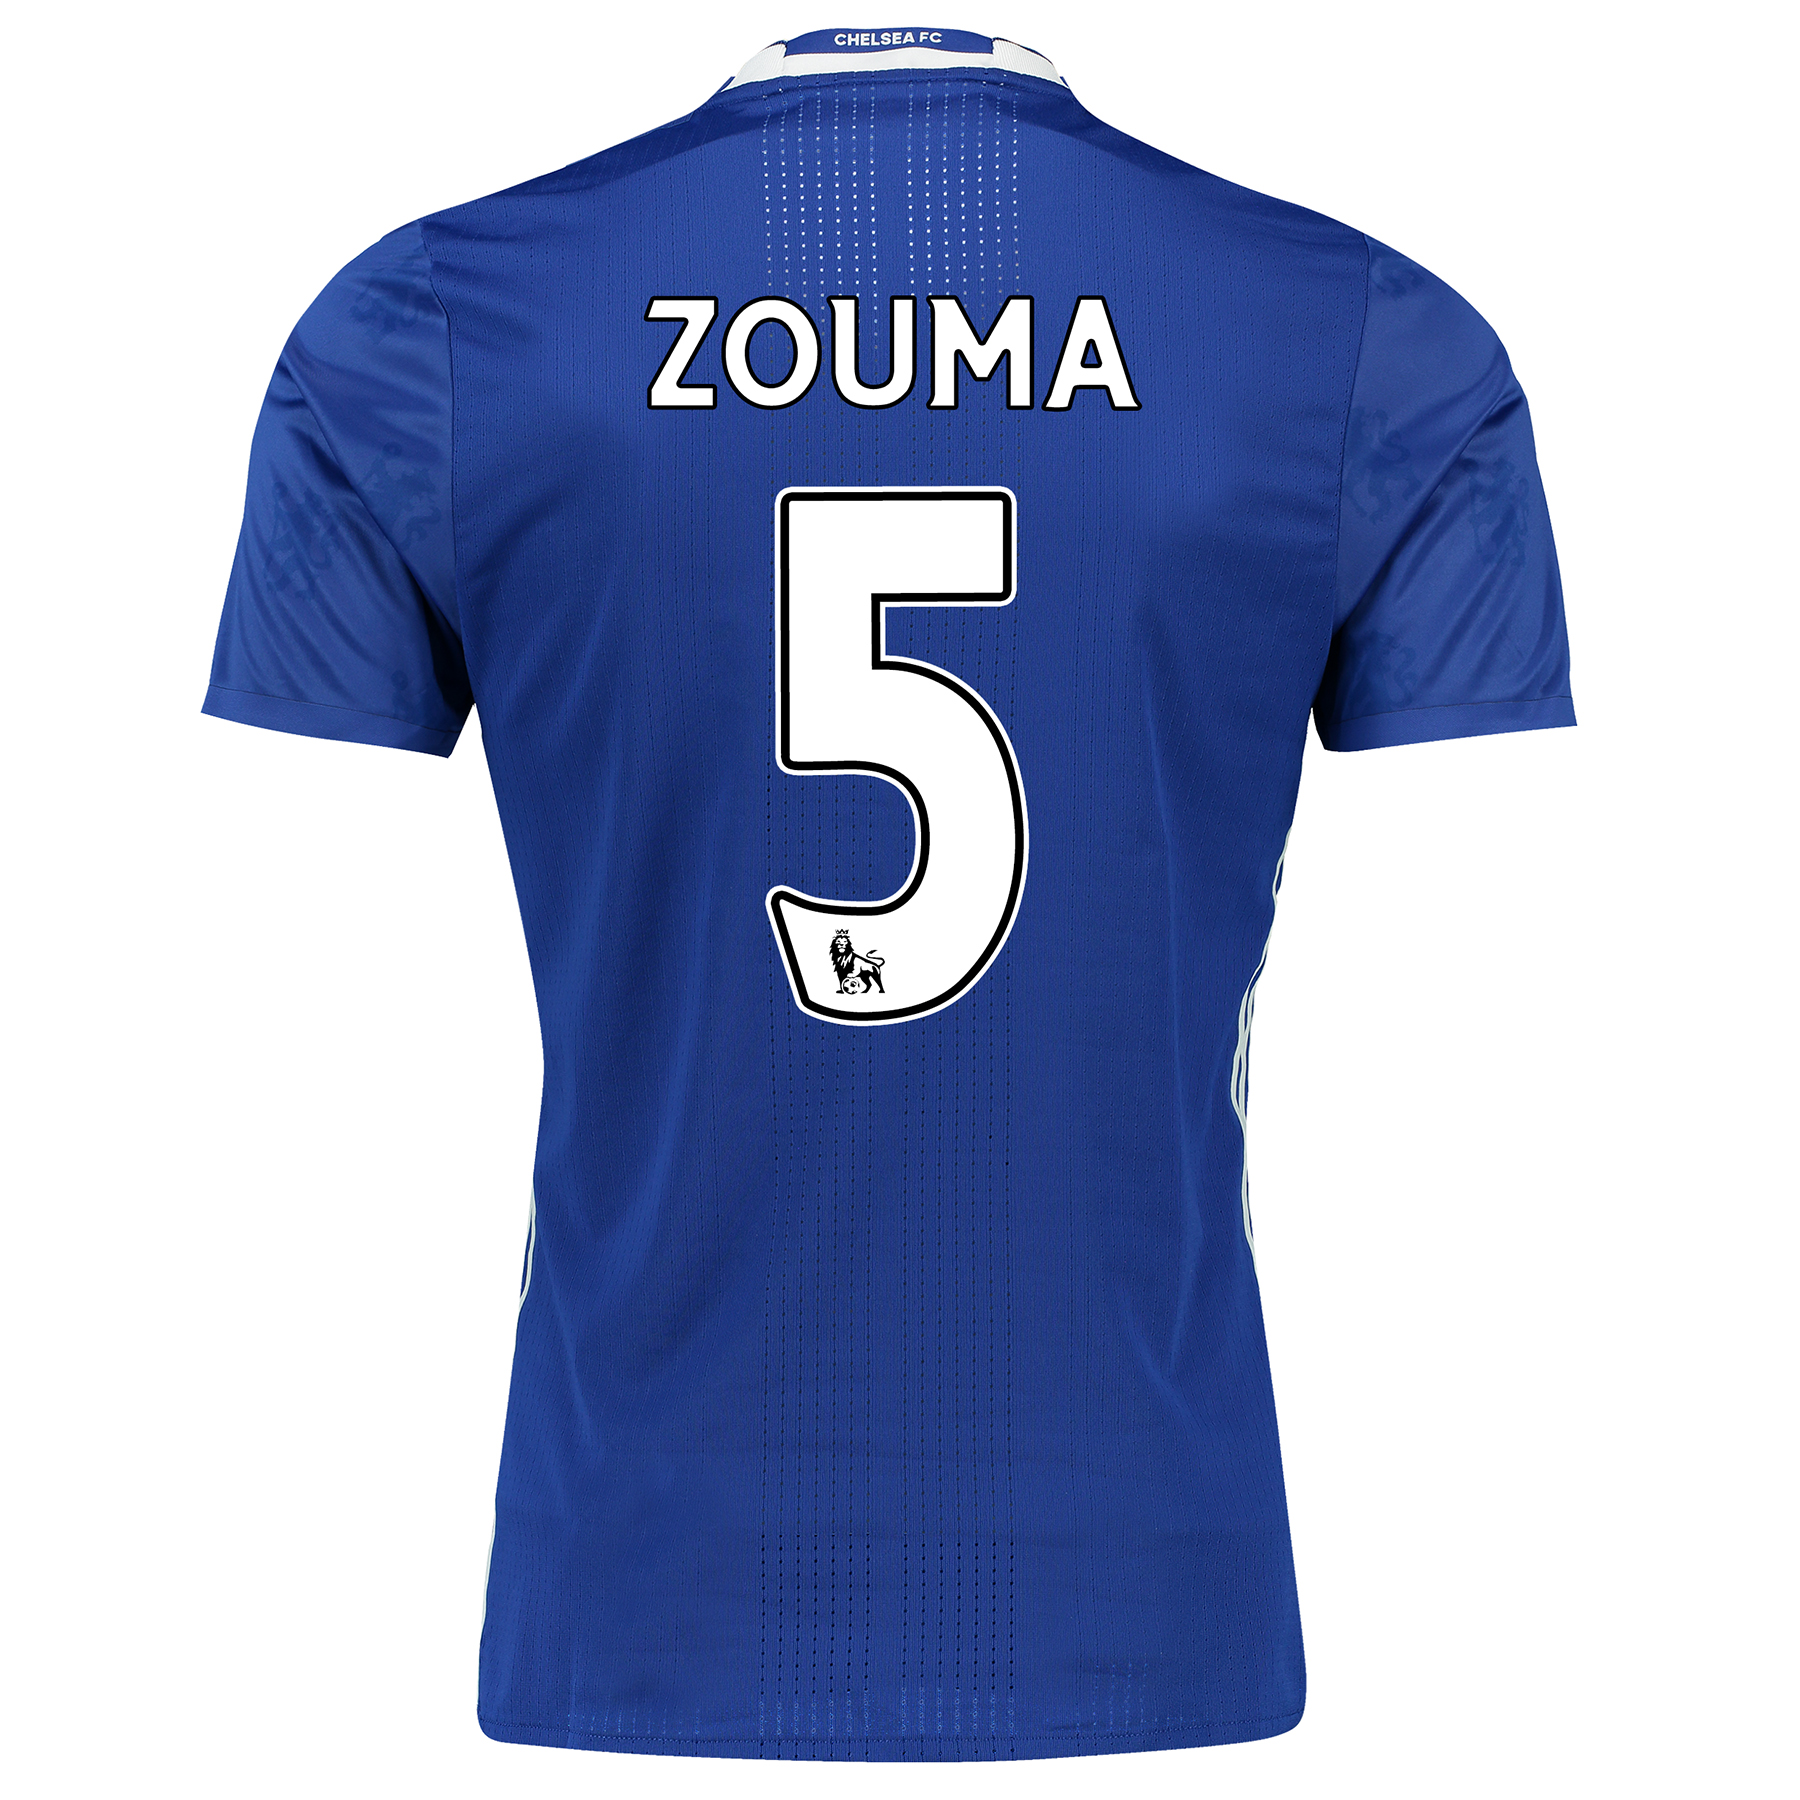 Shop Zouma Printed Shirts